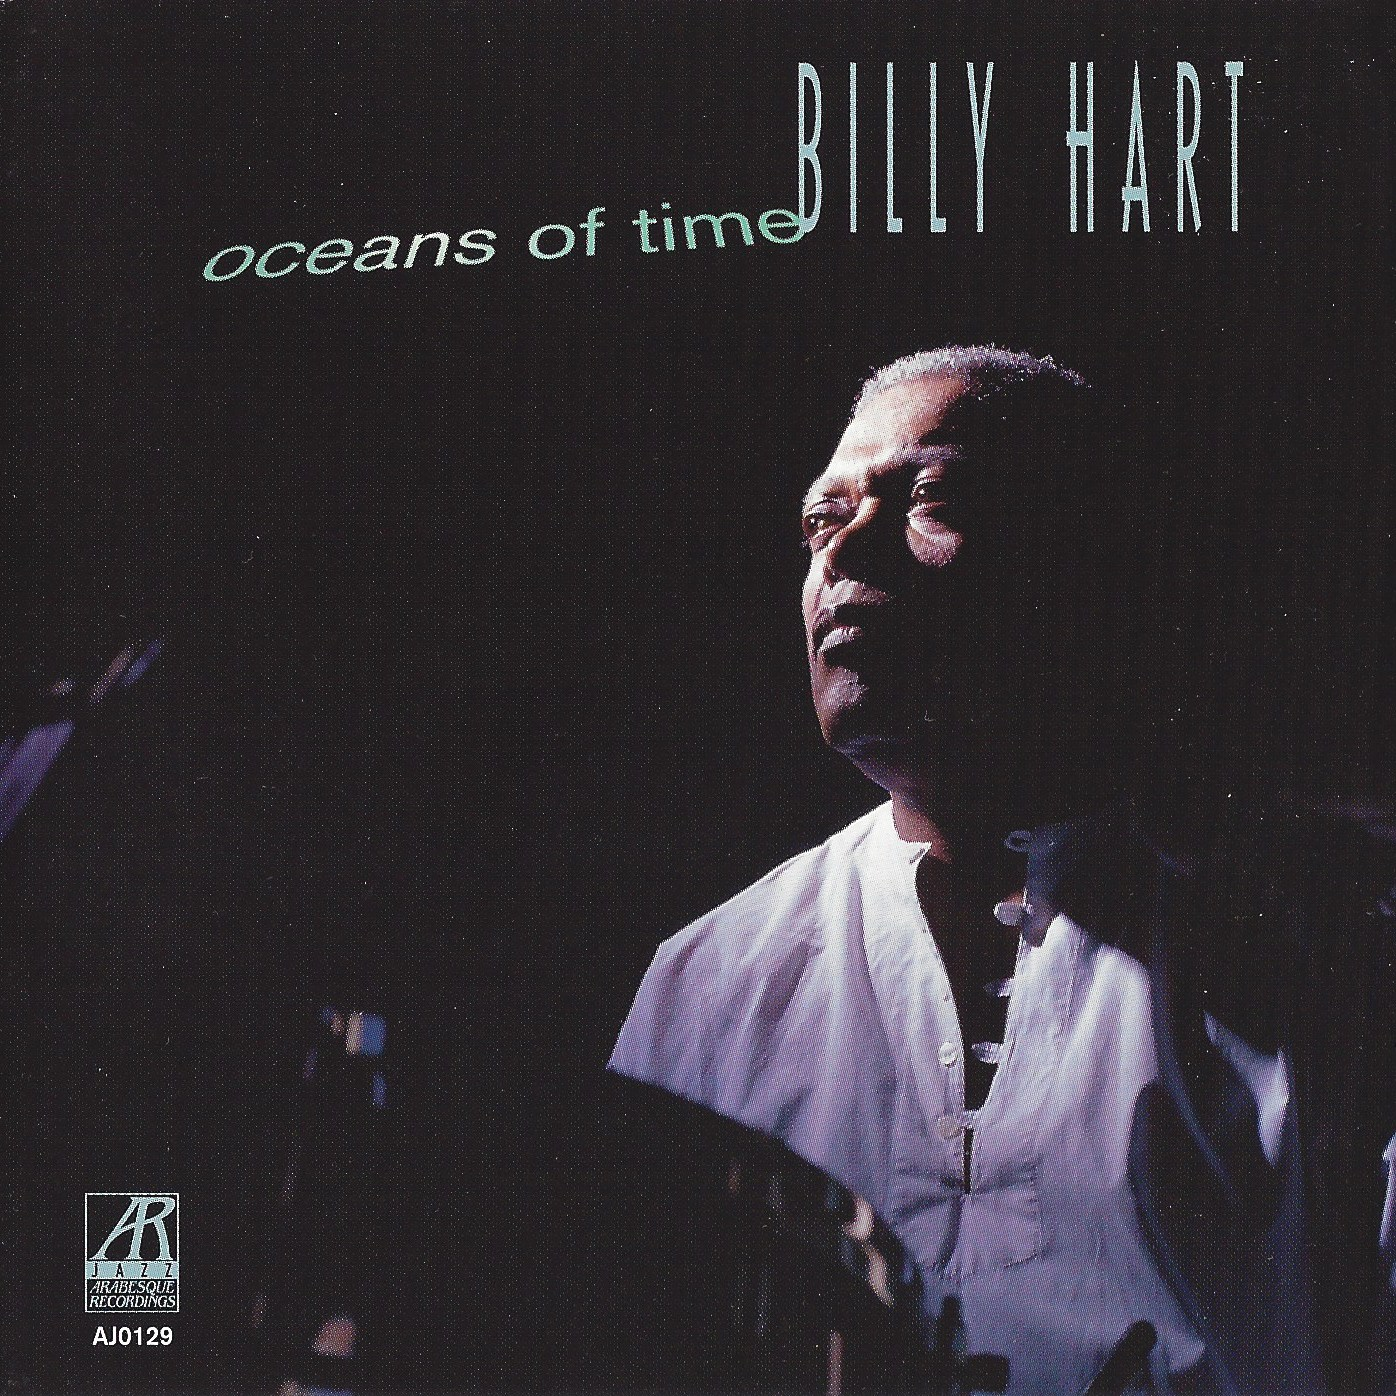 AJ0129 |  Oceans of Time  | Billy Hart